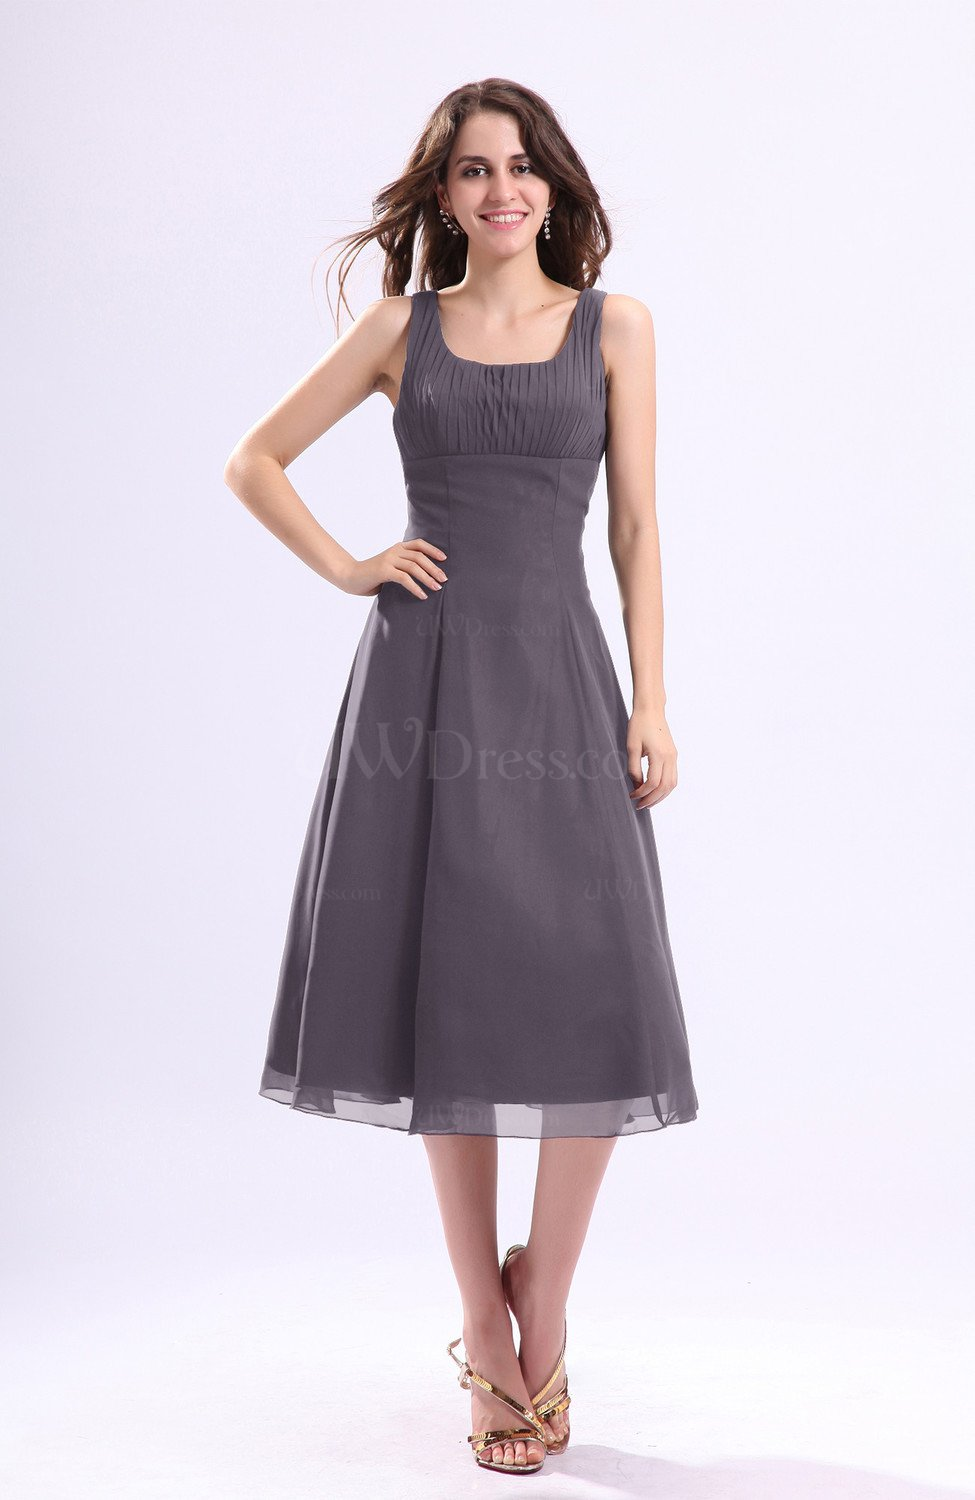 hot new products official reputable site Ridge Grey Simple A-line Square Sleeveless Zip up Wedding Guest Dresses